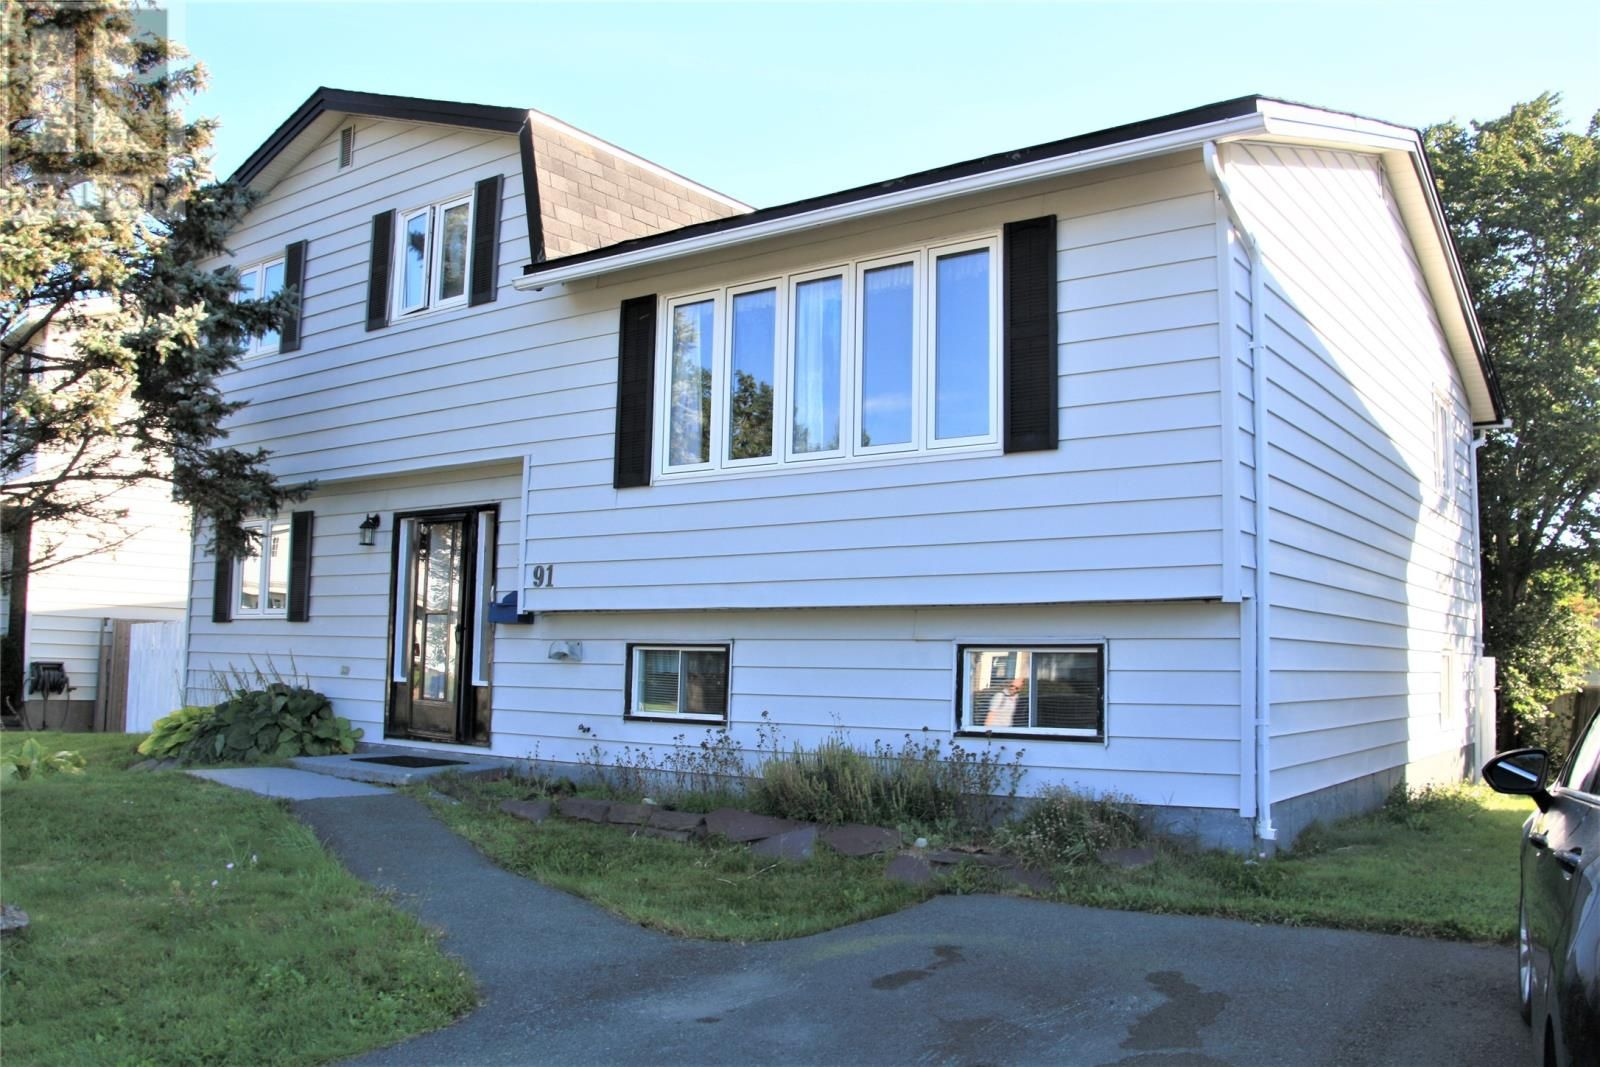 Main Photo: 91 Stirling Crescent in St. John's: House for sale : MLS®# 1237029